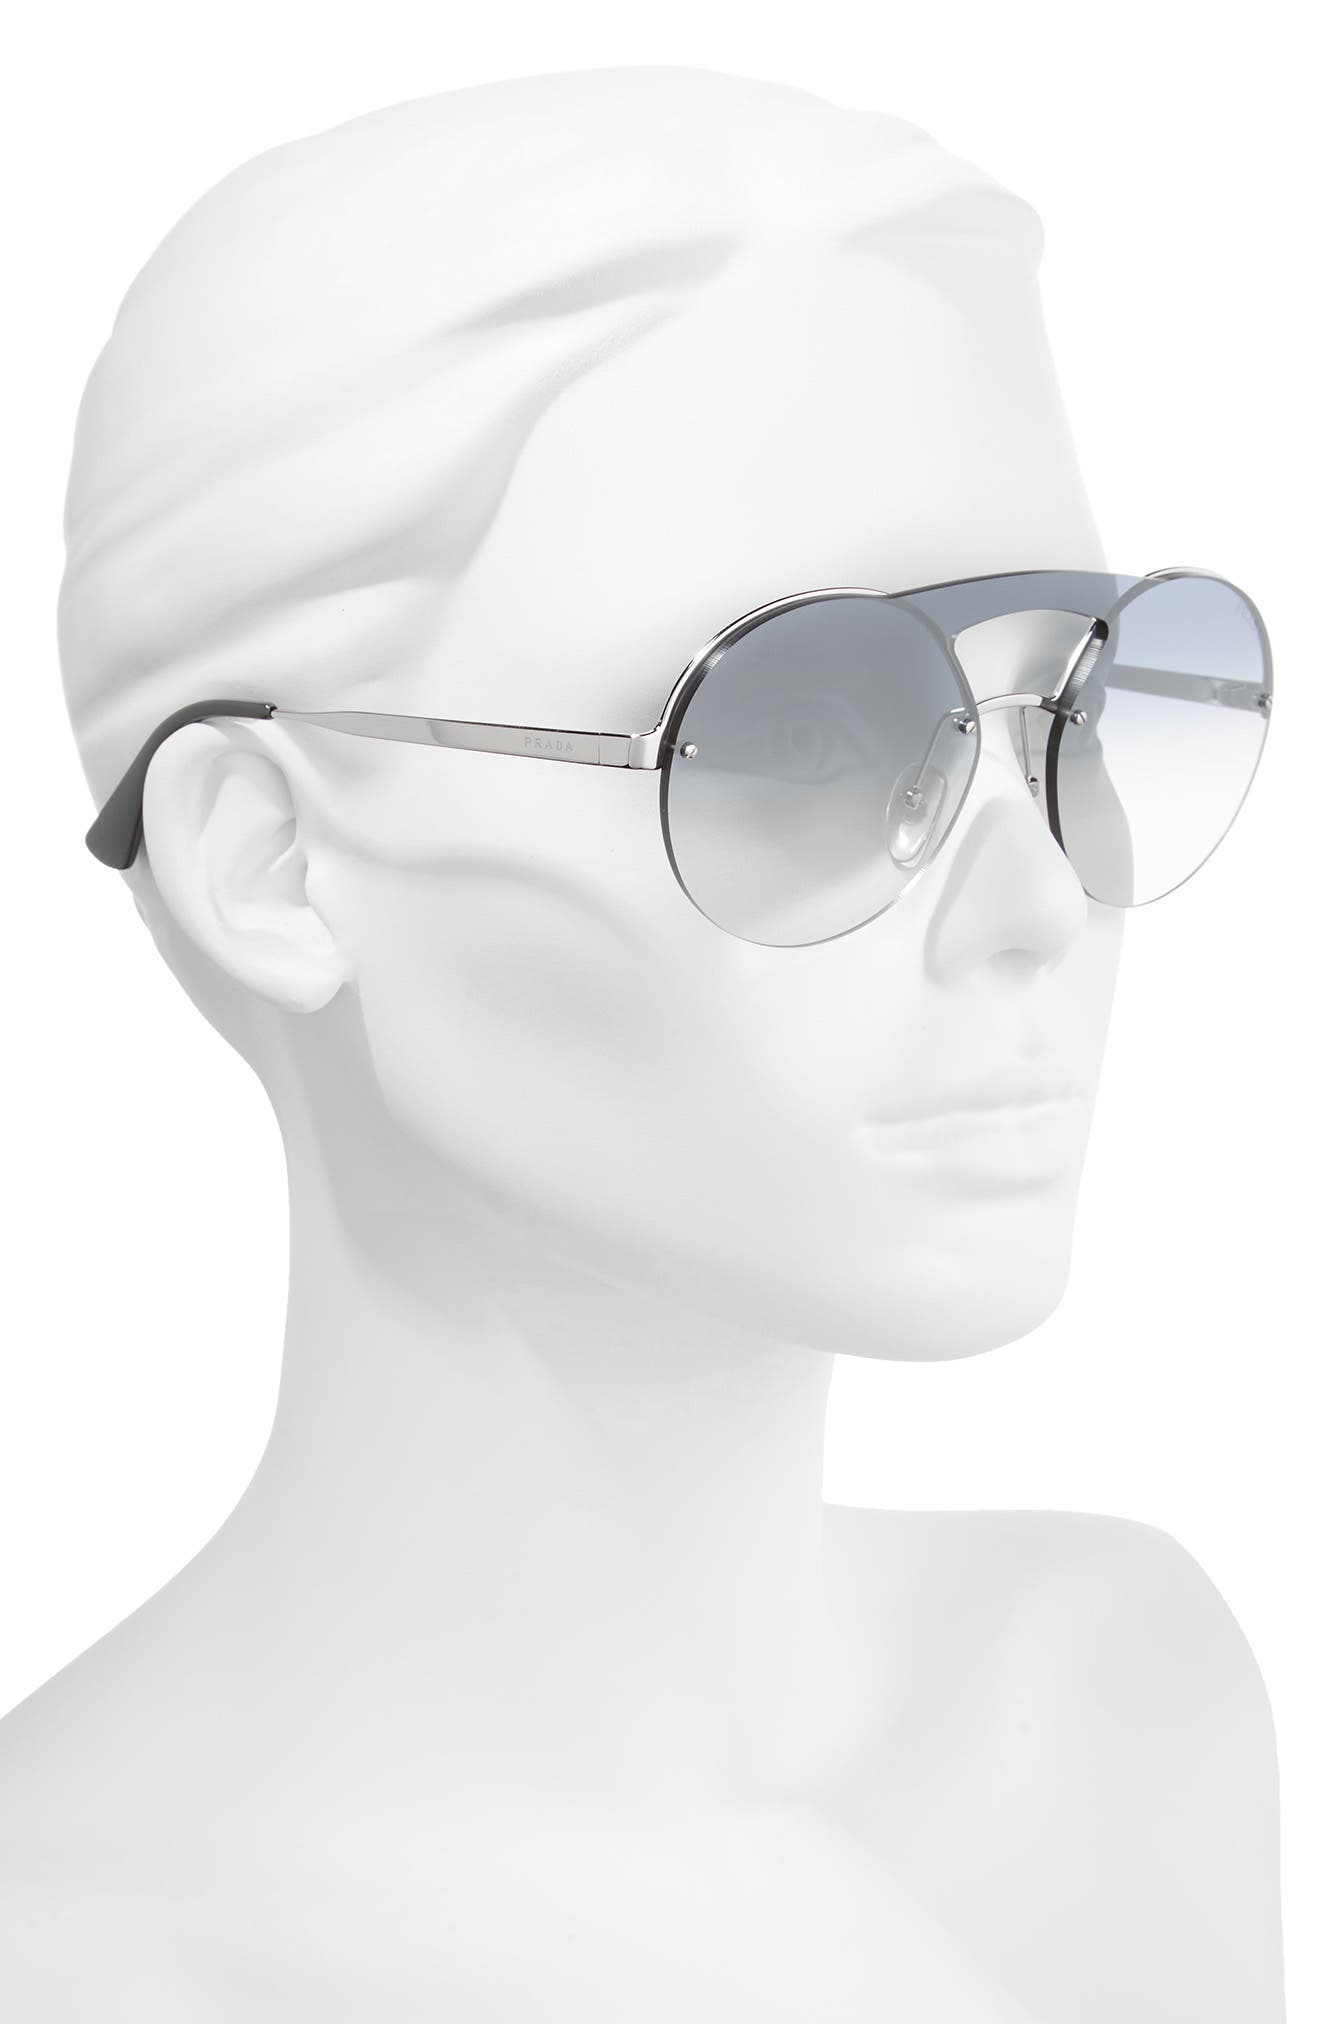 60mm Rimless Shield Sunglasses,                             Alternate thumbnail 2, color,                             Silver/ Blue